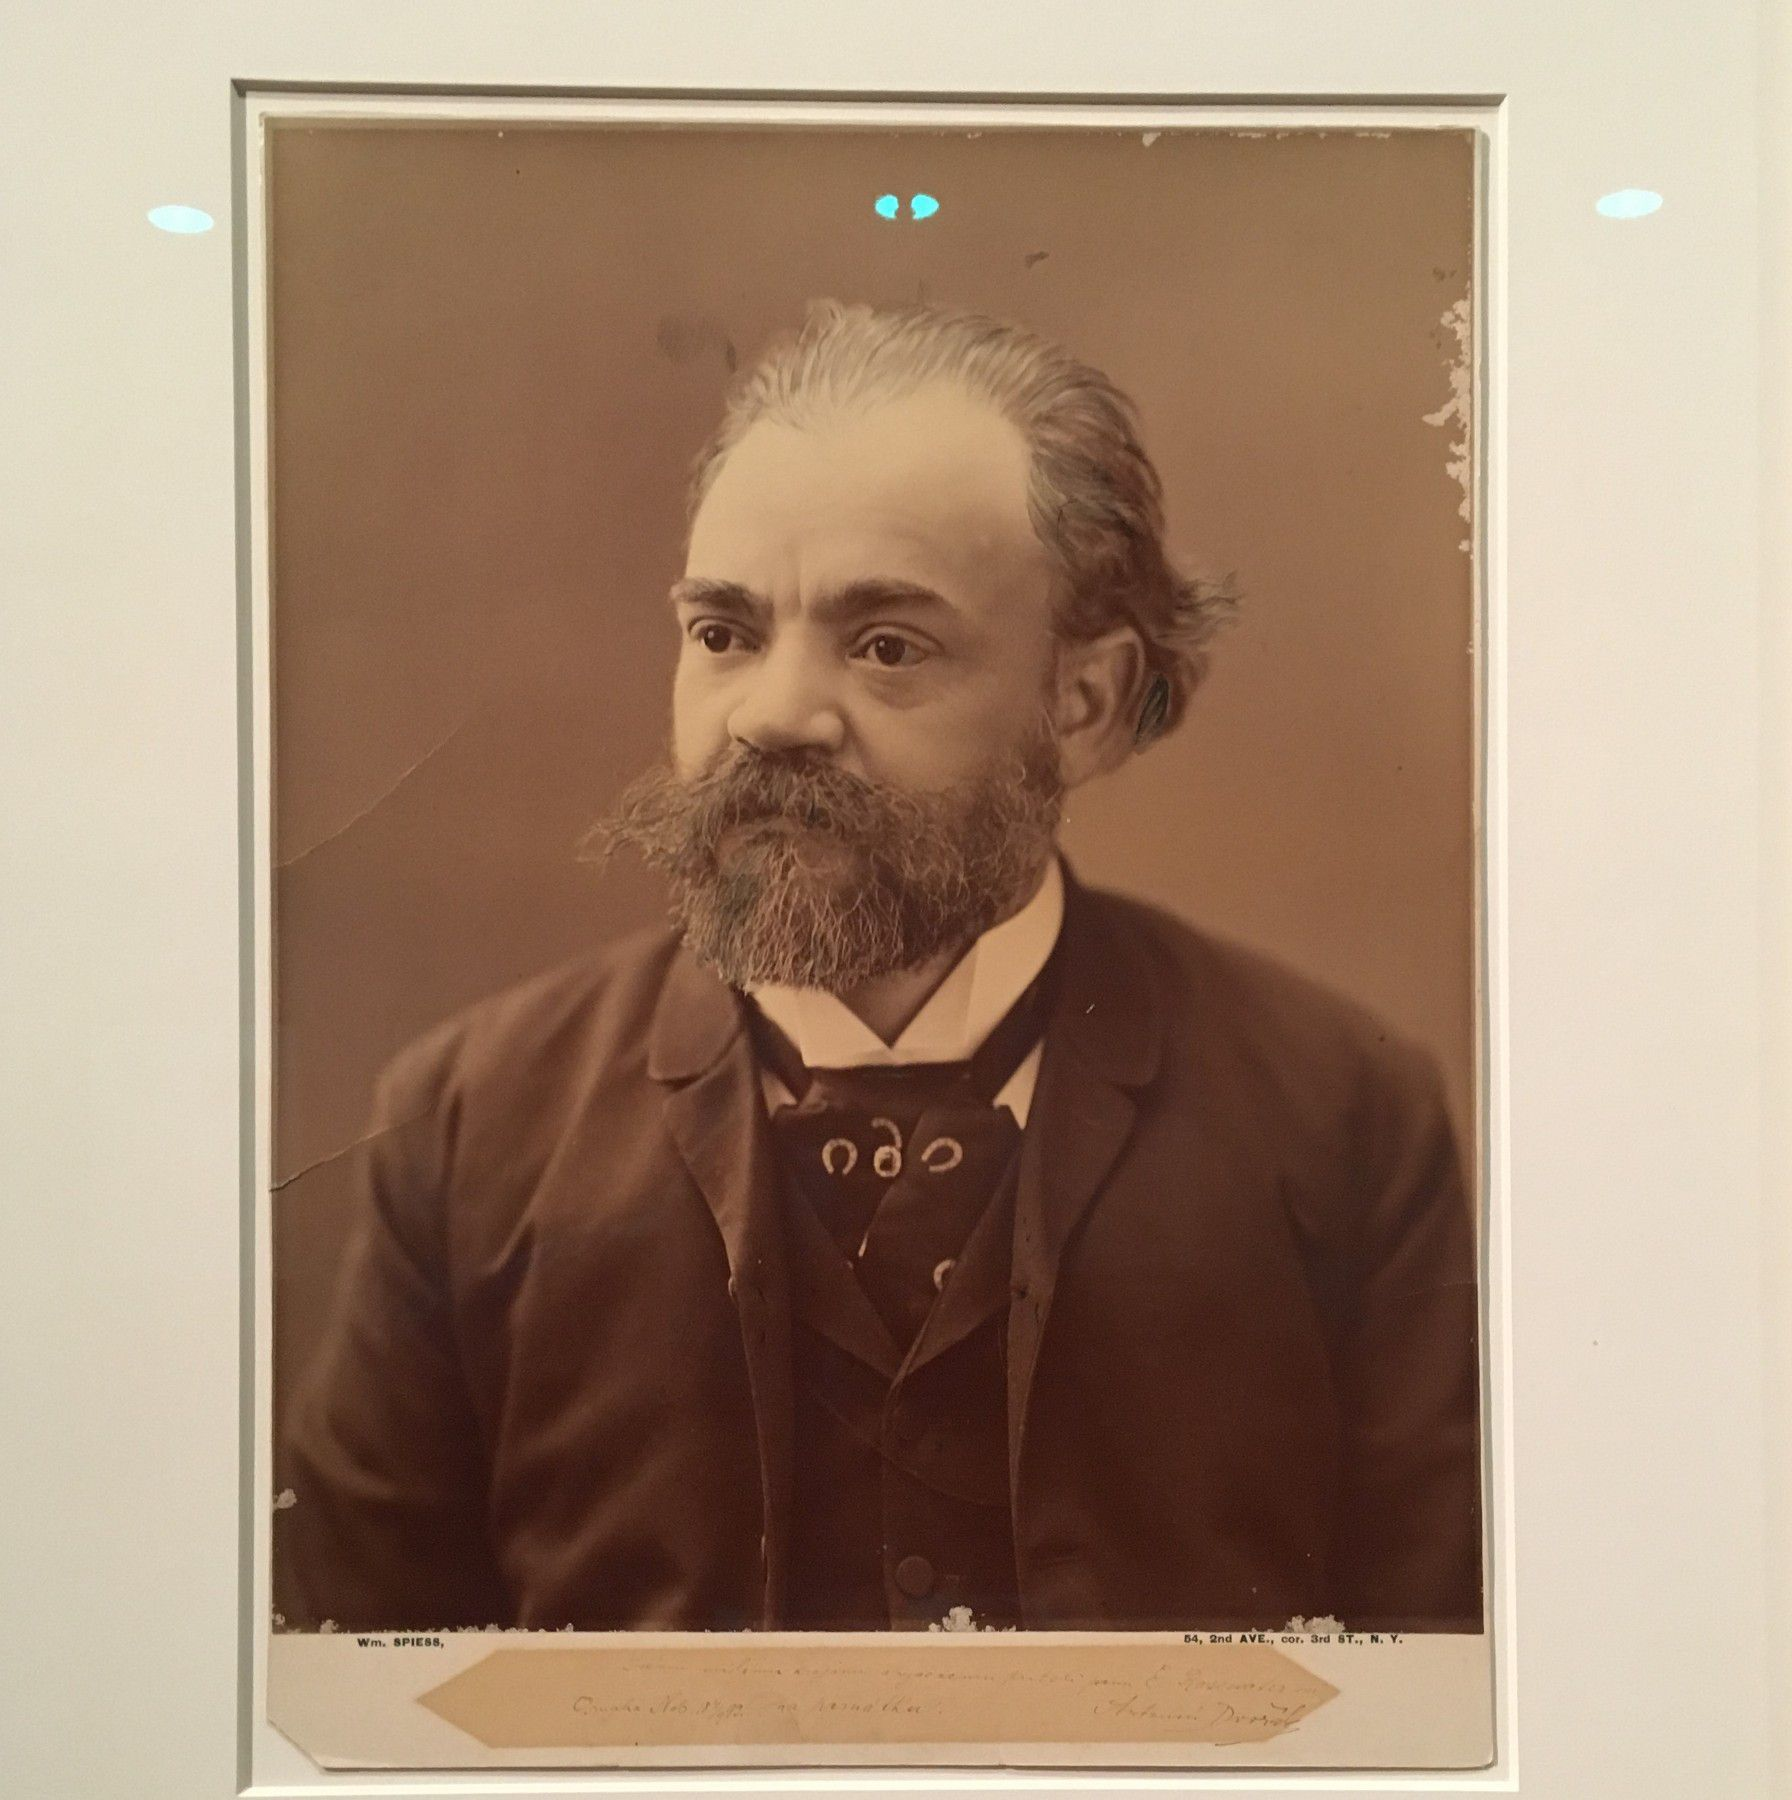 Unfinished piano piece by Antonín Dvořák completed by AI programme